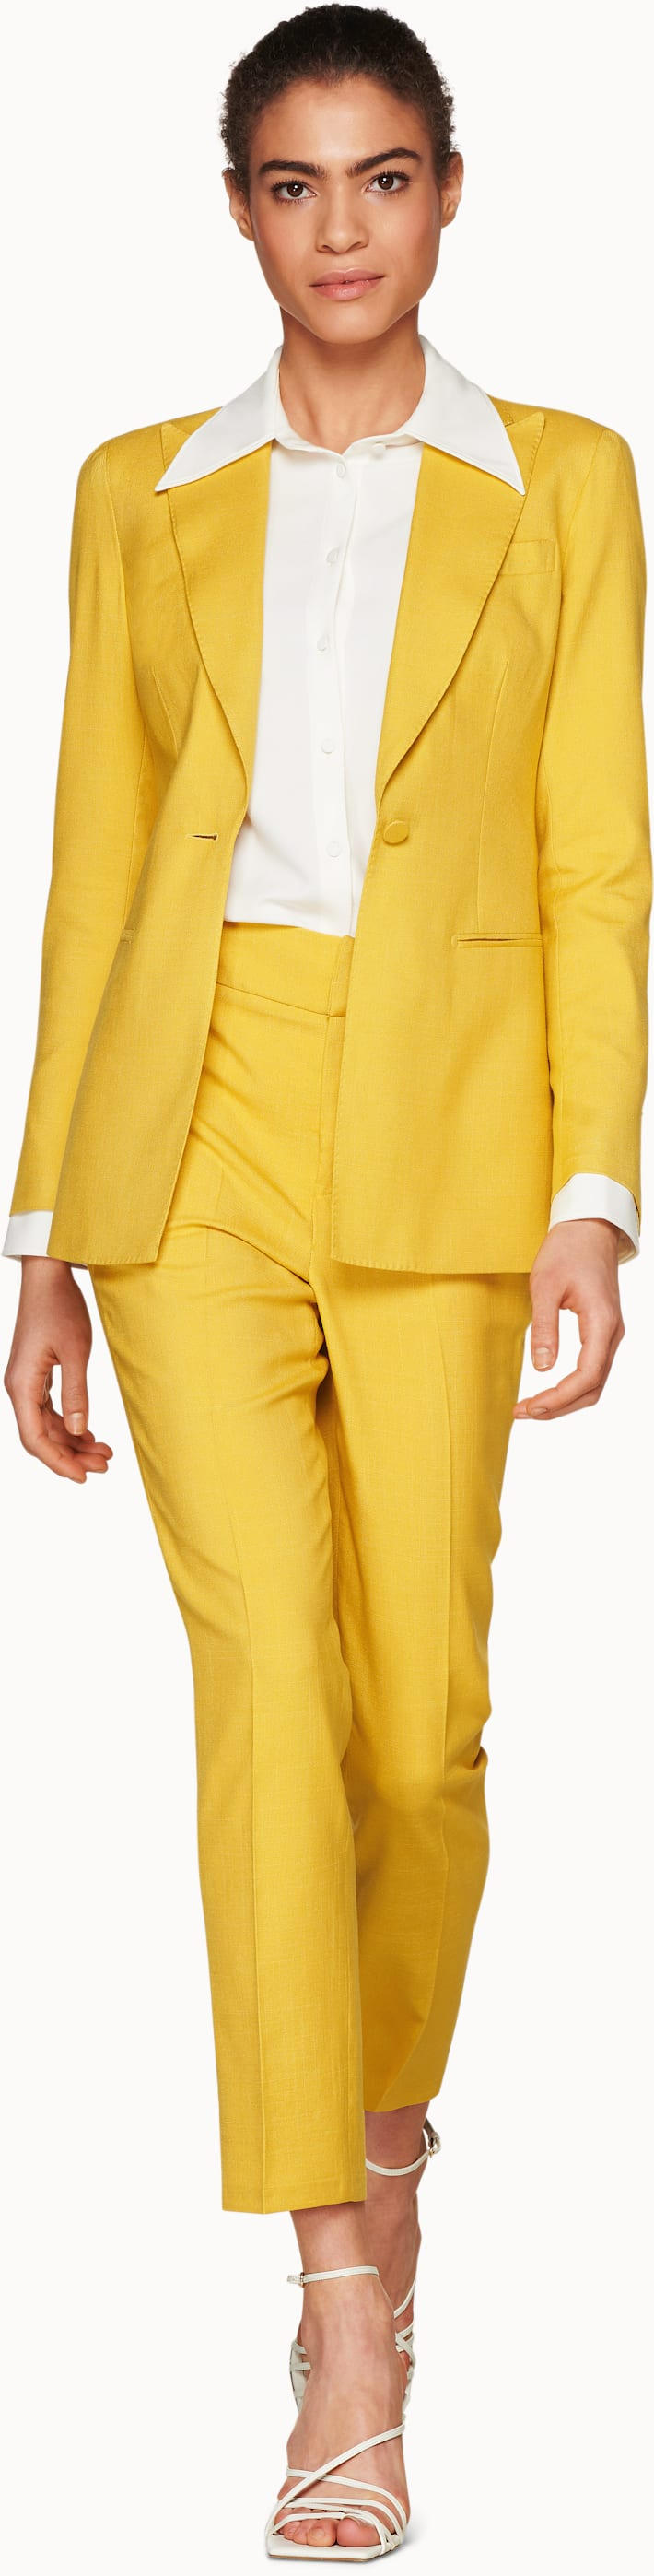 Cameron Yellow Suit